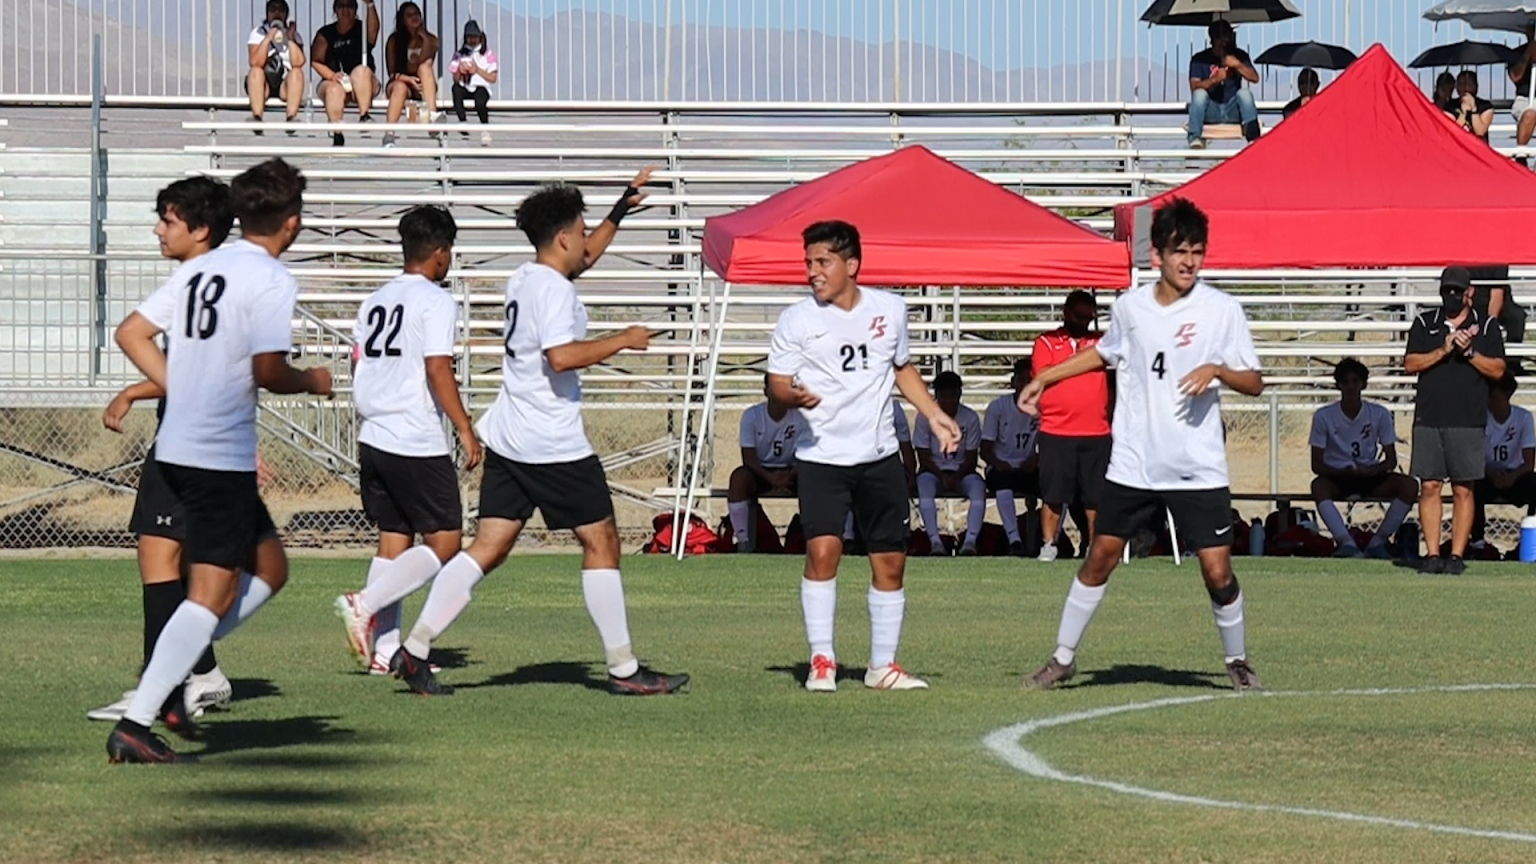 What's Next for the Undefeated Palm Springs Boys' Soccer Team? CIF Playoffs